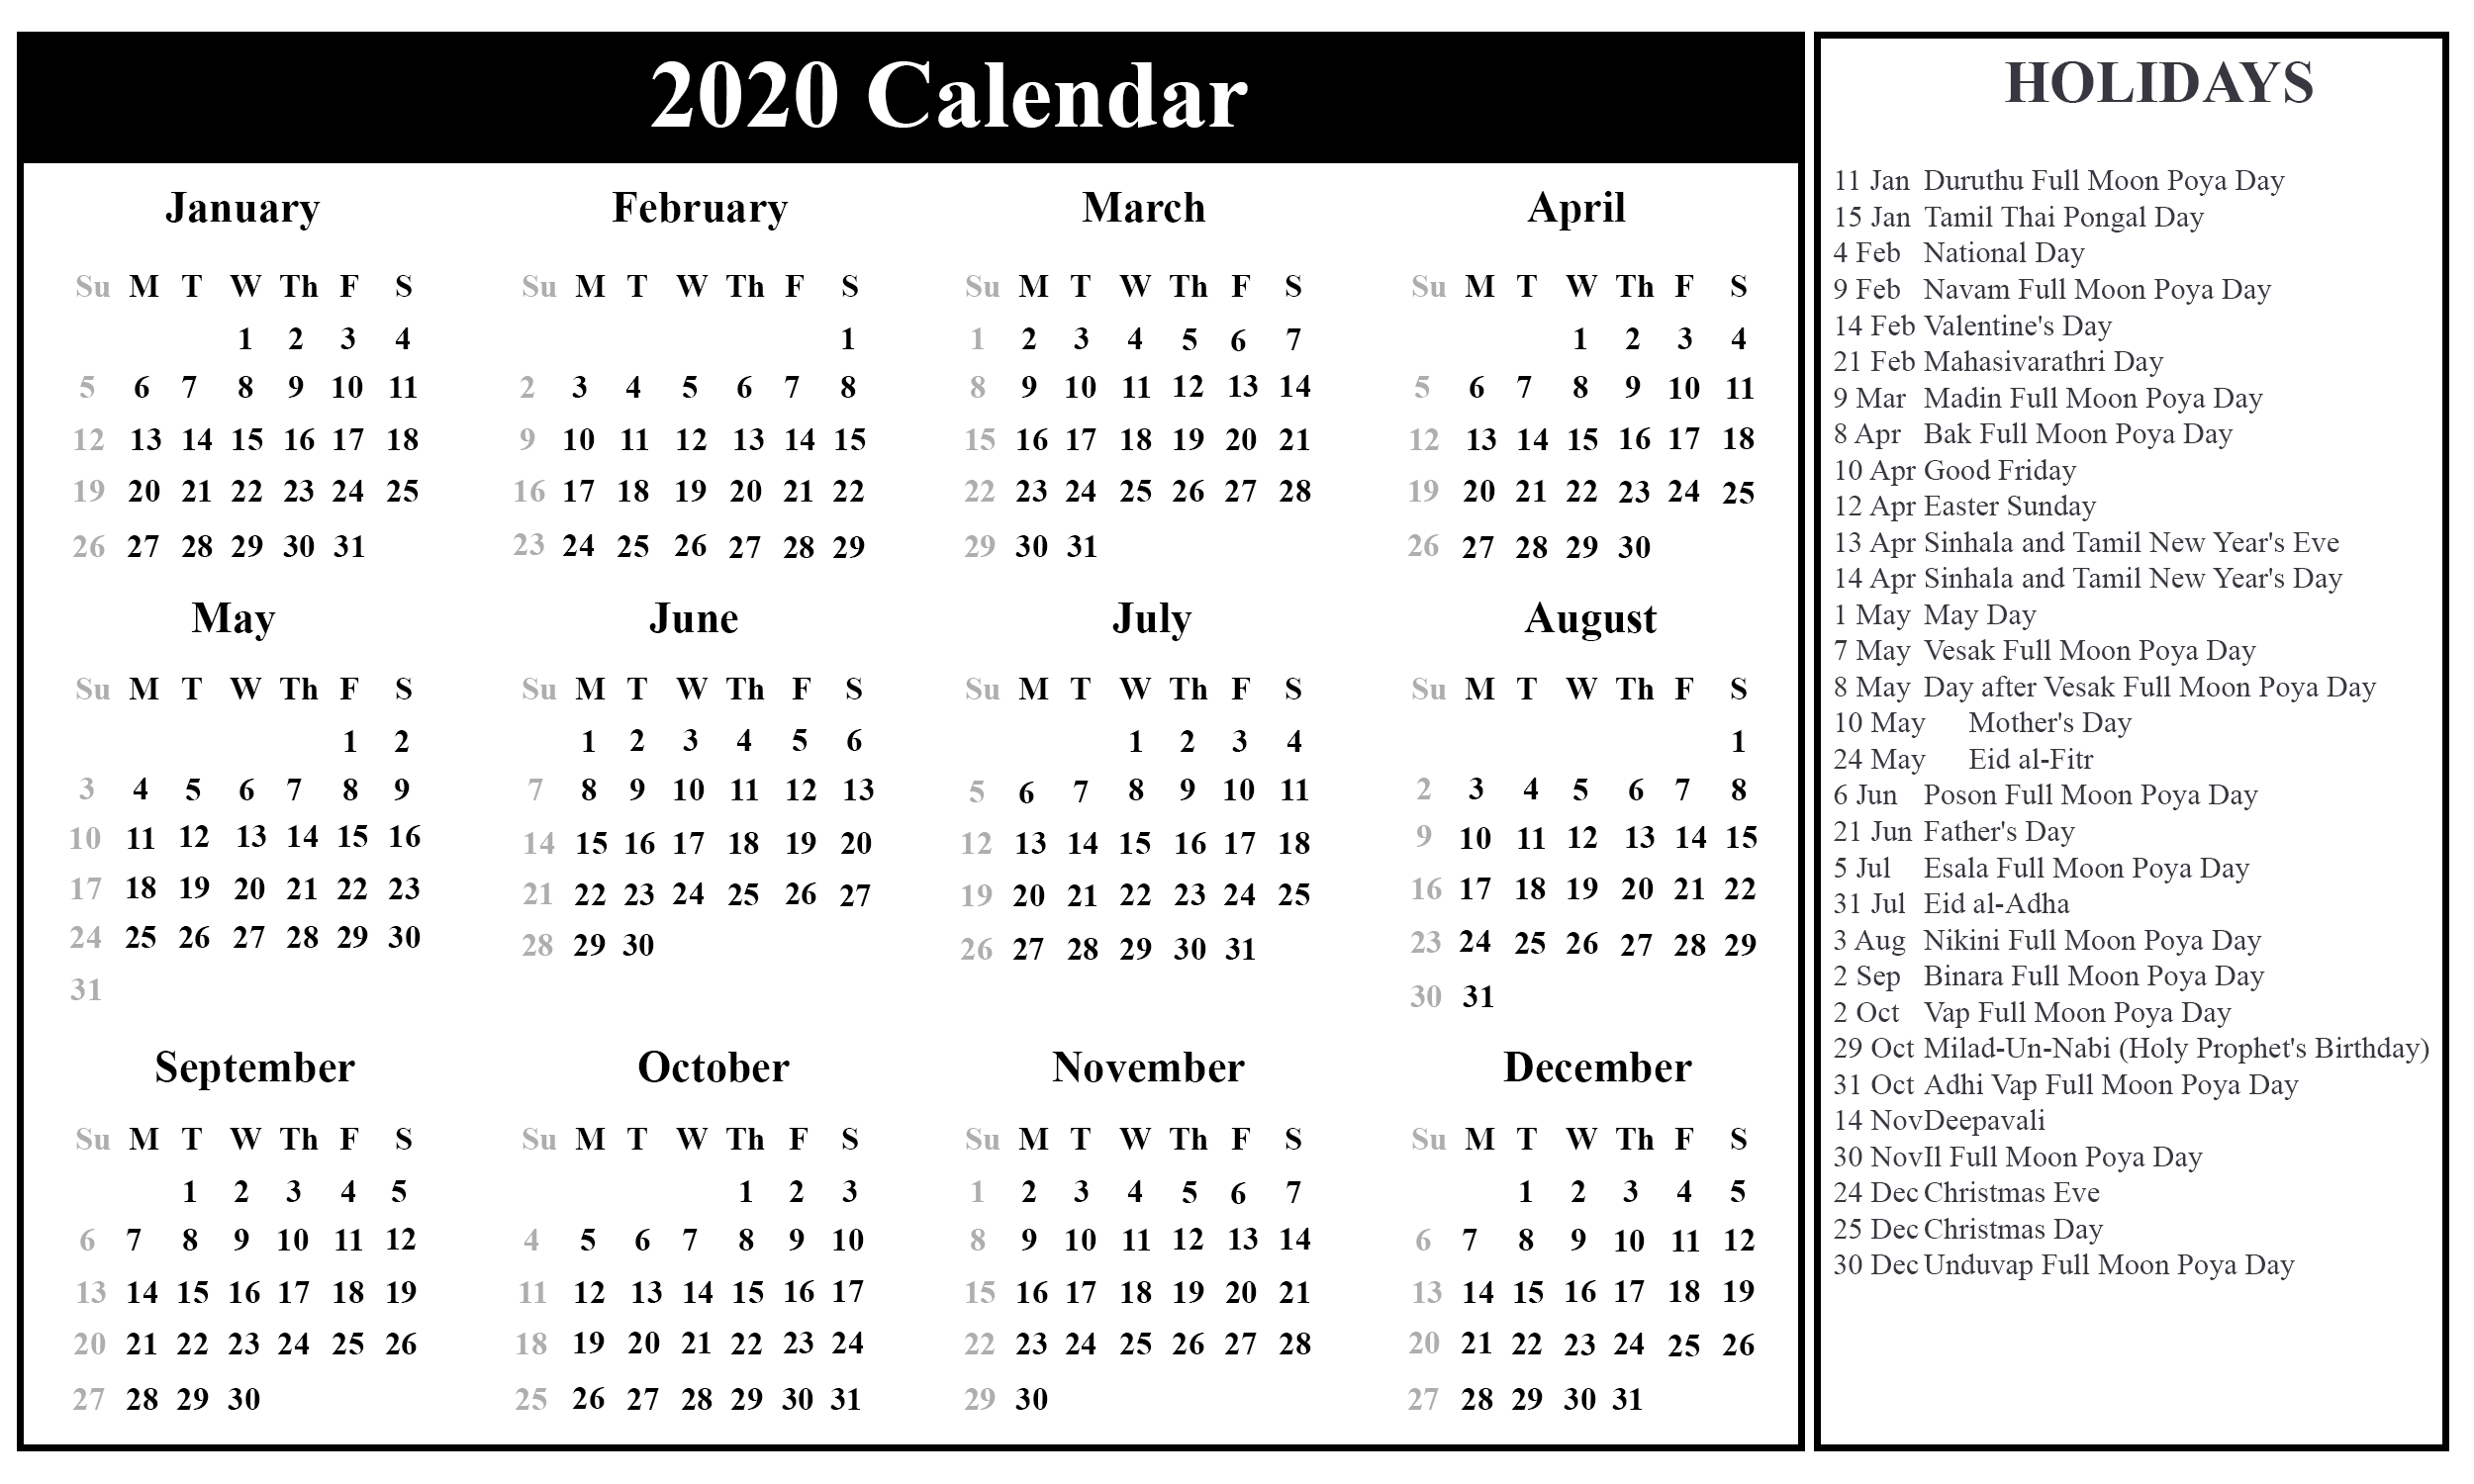 Free Printable Sri Lanka Calendar 2020 With Holidays In Pdf-January 2020 Calendar In Urdu